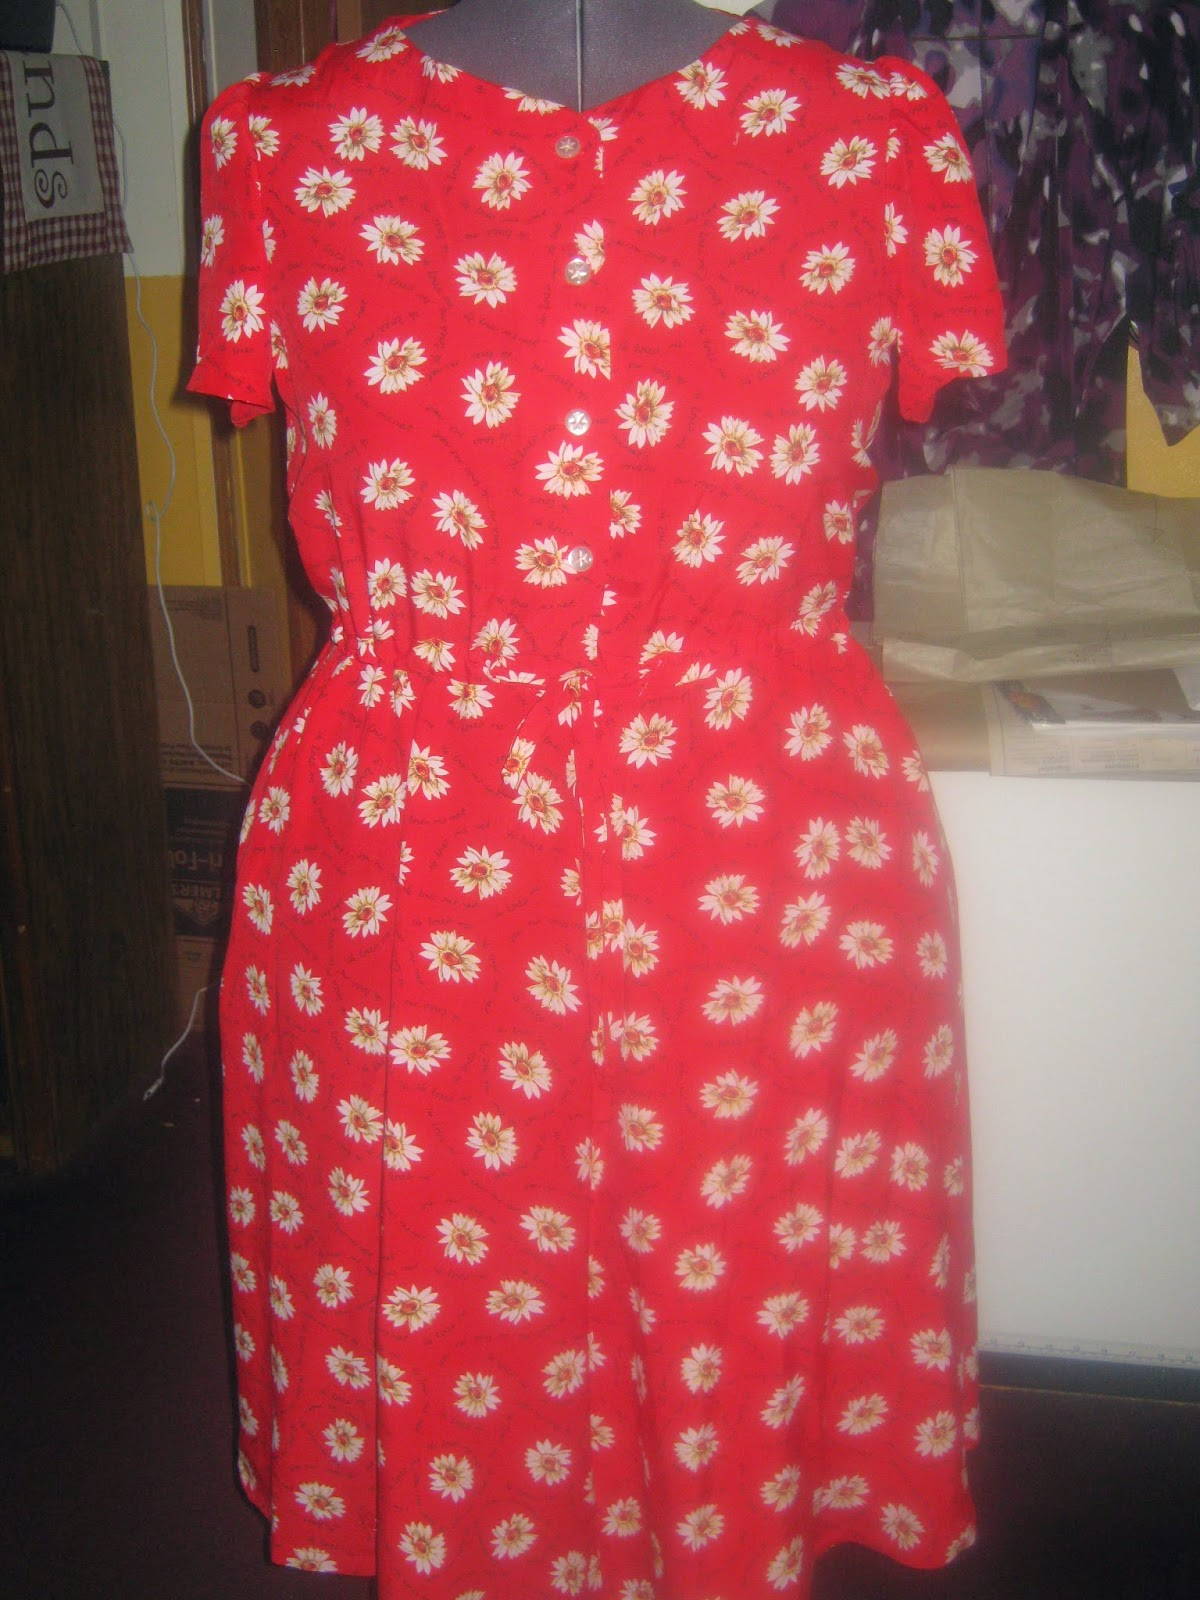 New Look 6653 Dress Front View Daisies on Red www.sewplus.blogspot.com